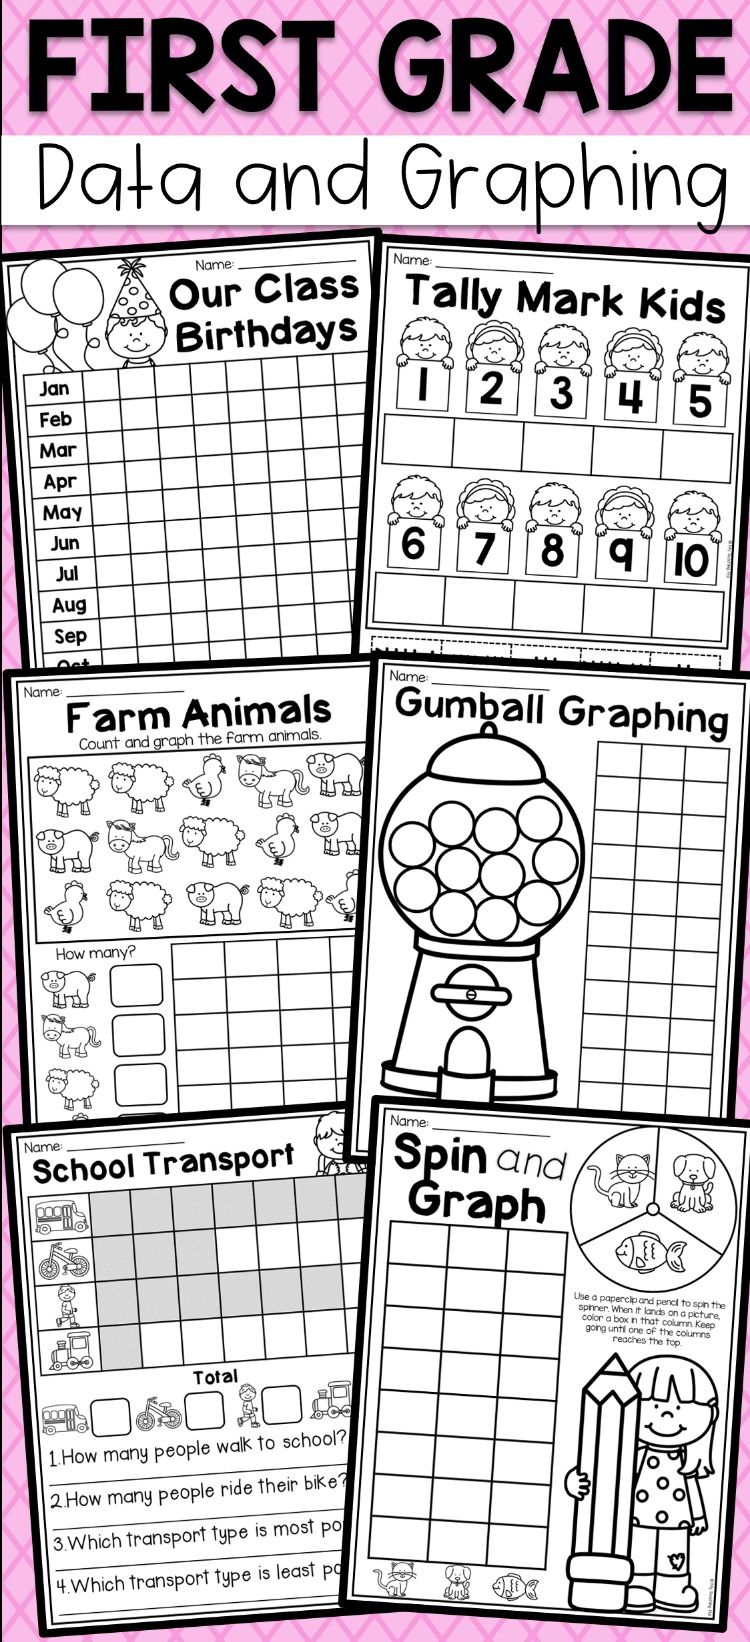 medium resolution of First Grade Data and Graphing Worksheets - Distance Learning   Graphing  first grade